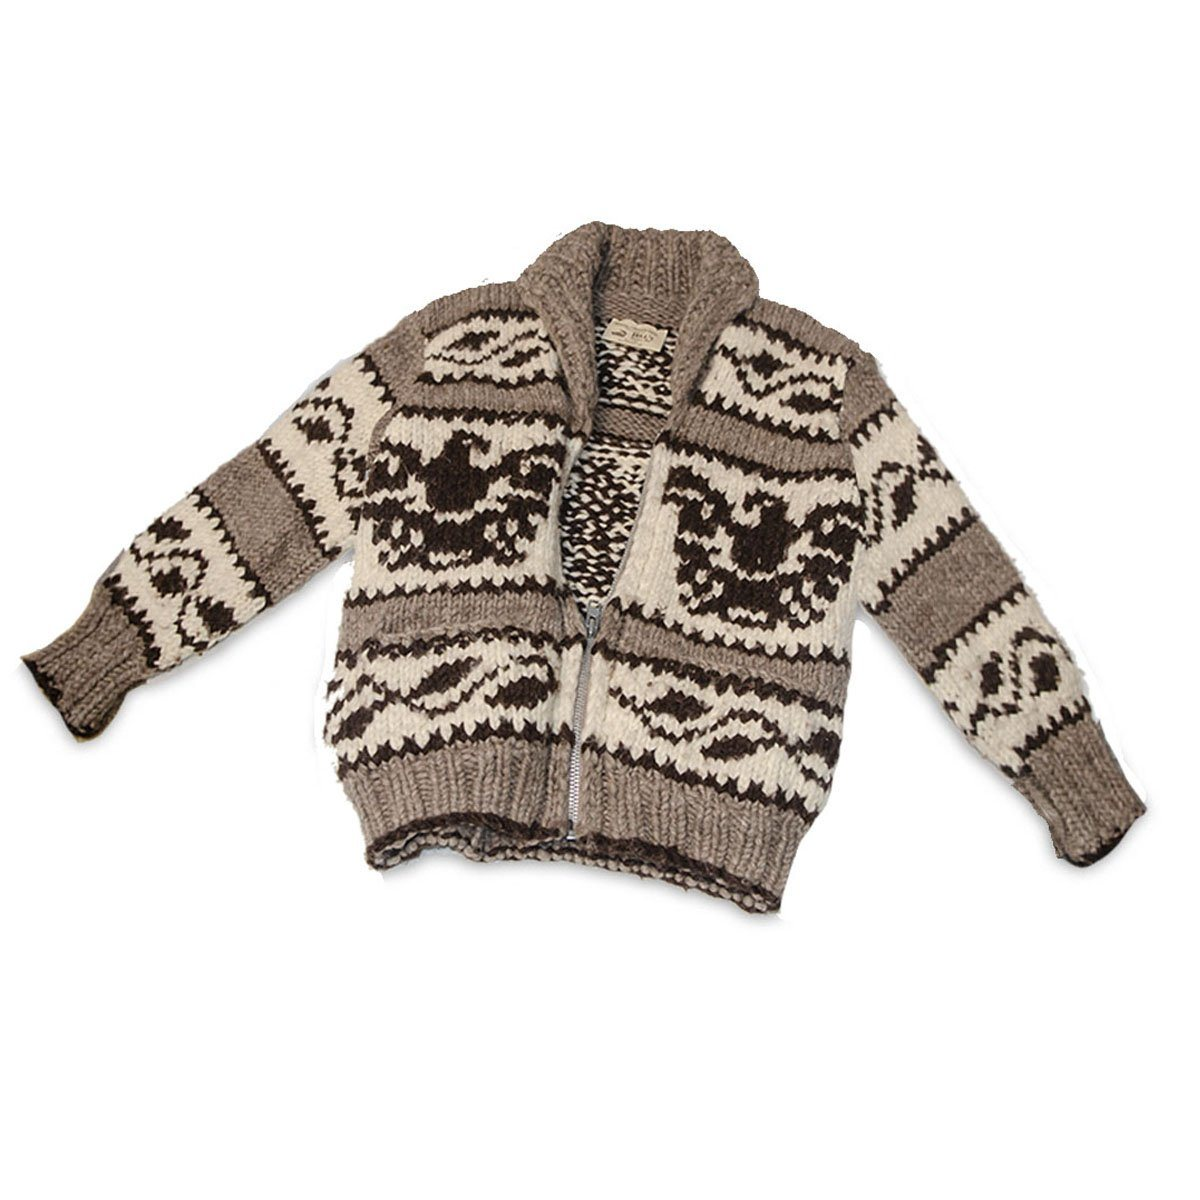 Canadian First Nation Cowchin Cardigan Sweater, Thunderbird Design 3